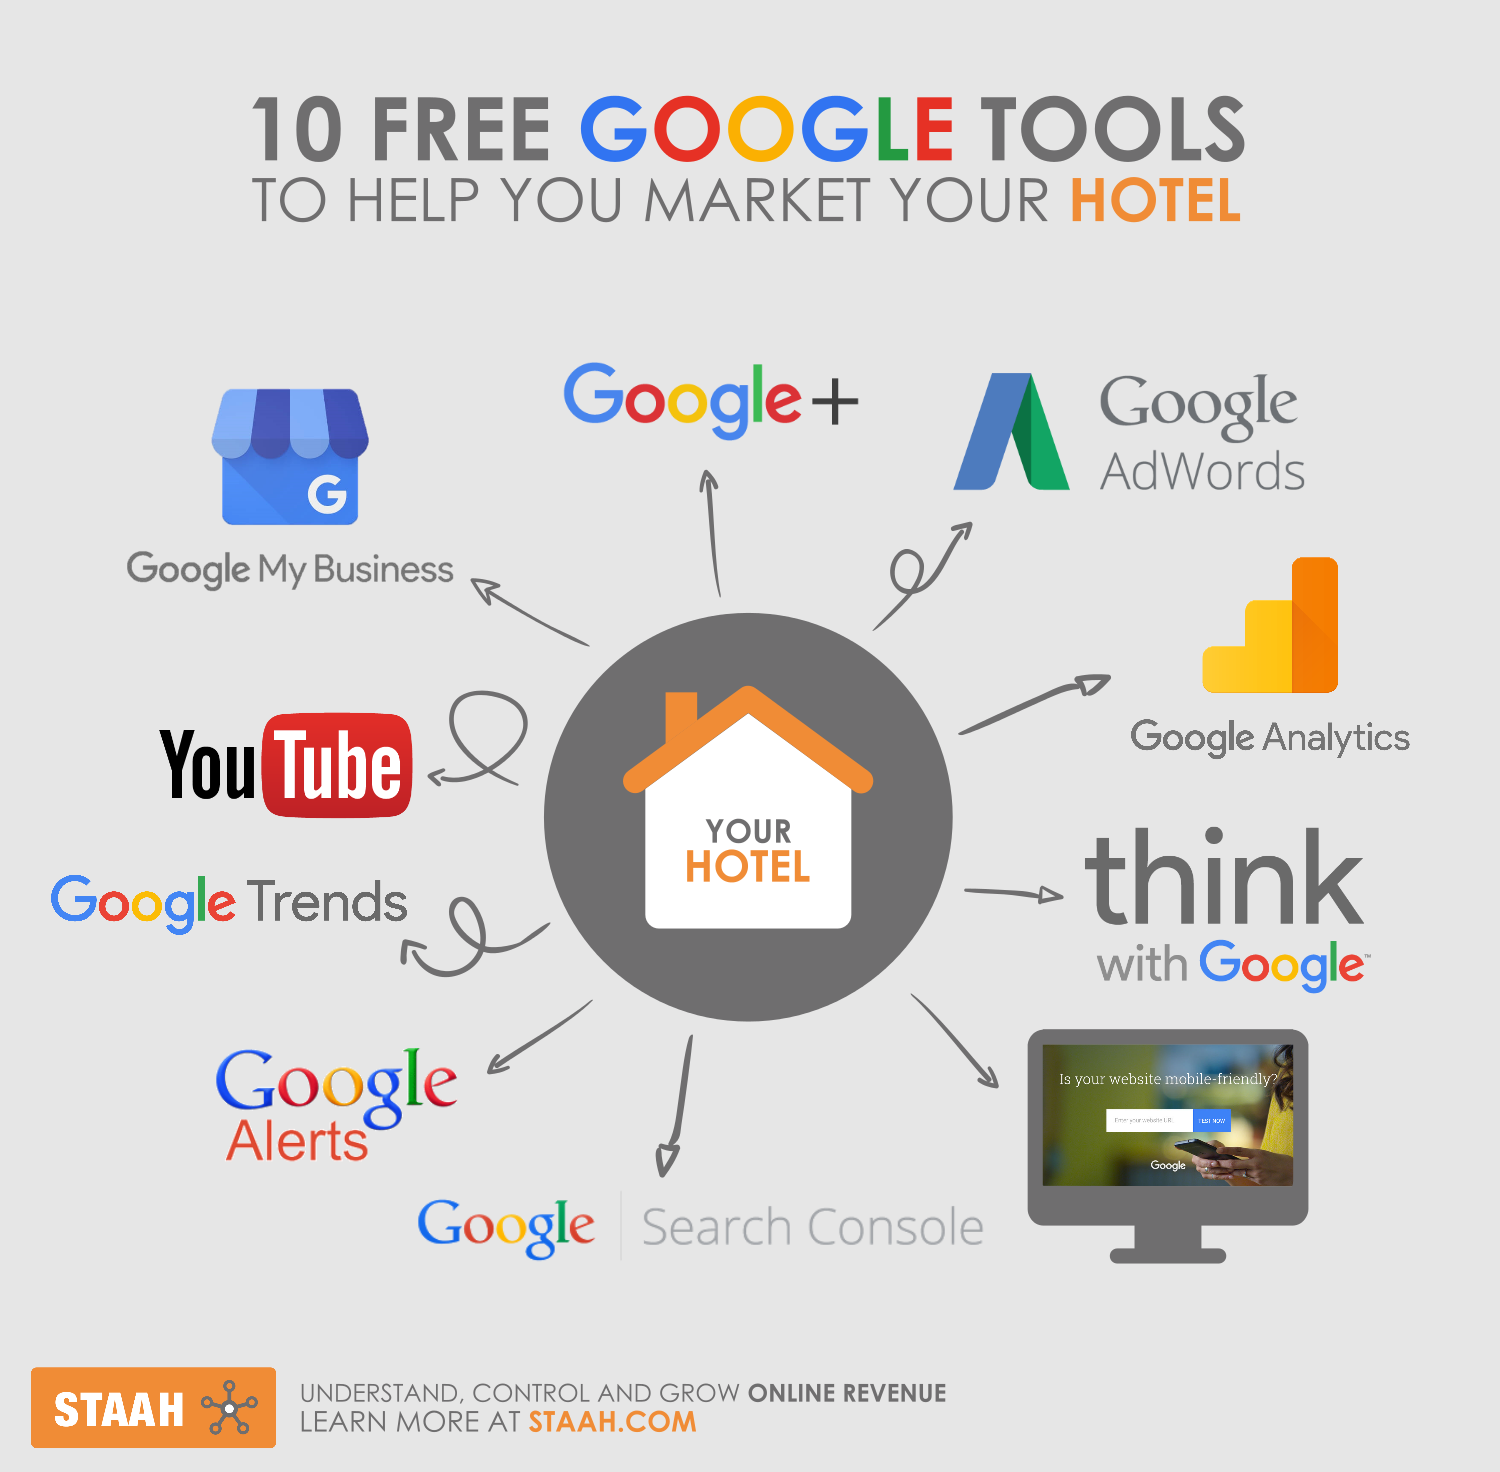 10 Free Google Tools to Help You Market Your Hotel - STAAH Blog